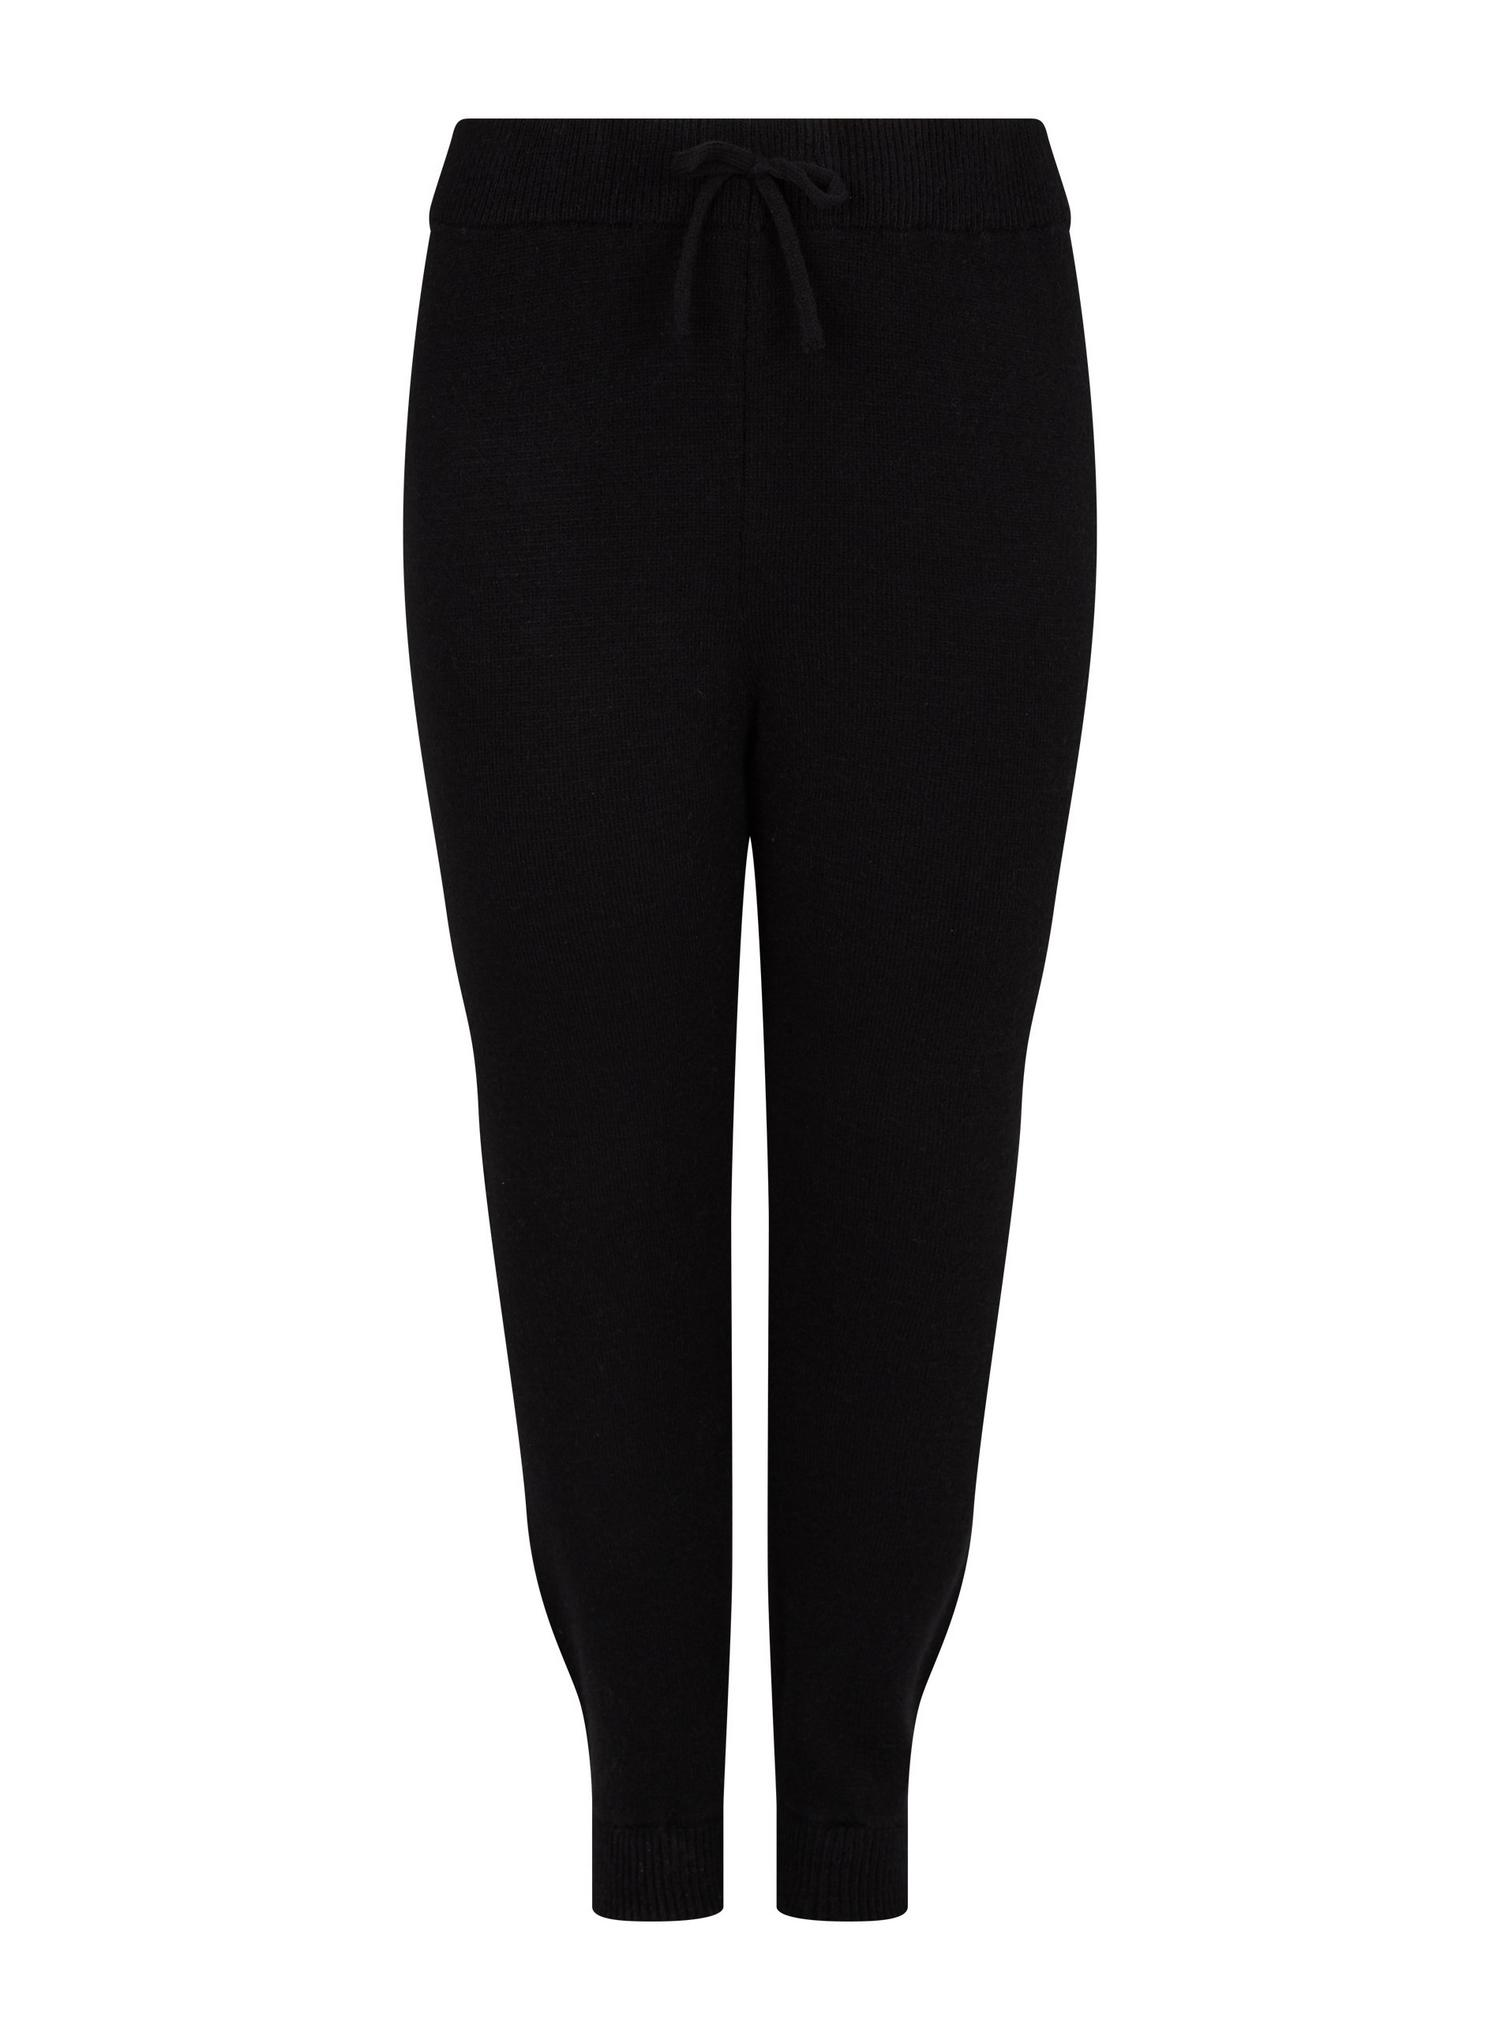 105 Curve Black Lounge Knitted Joggers image number 2